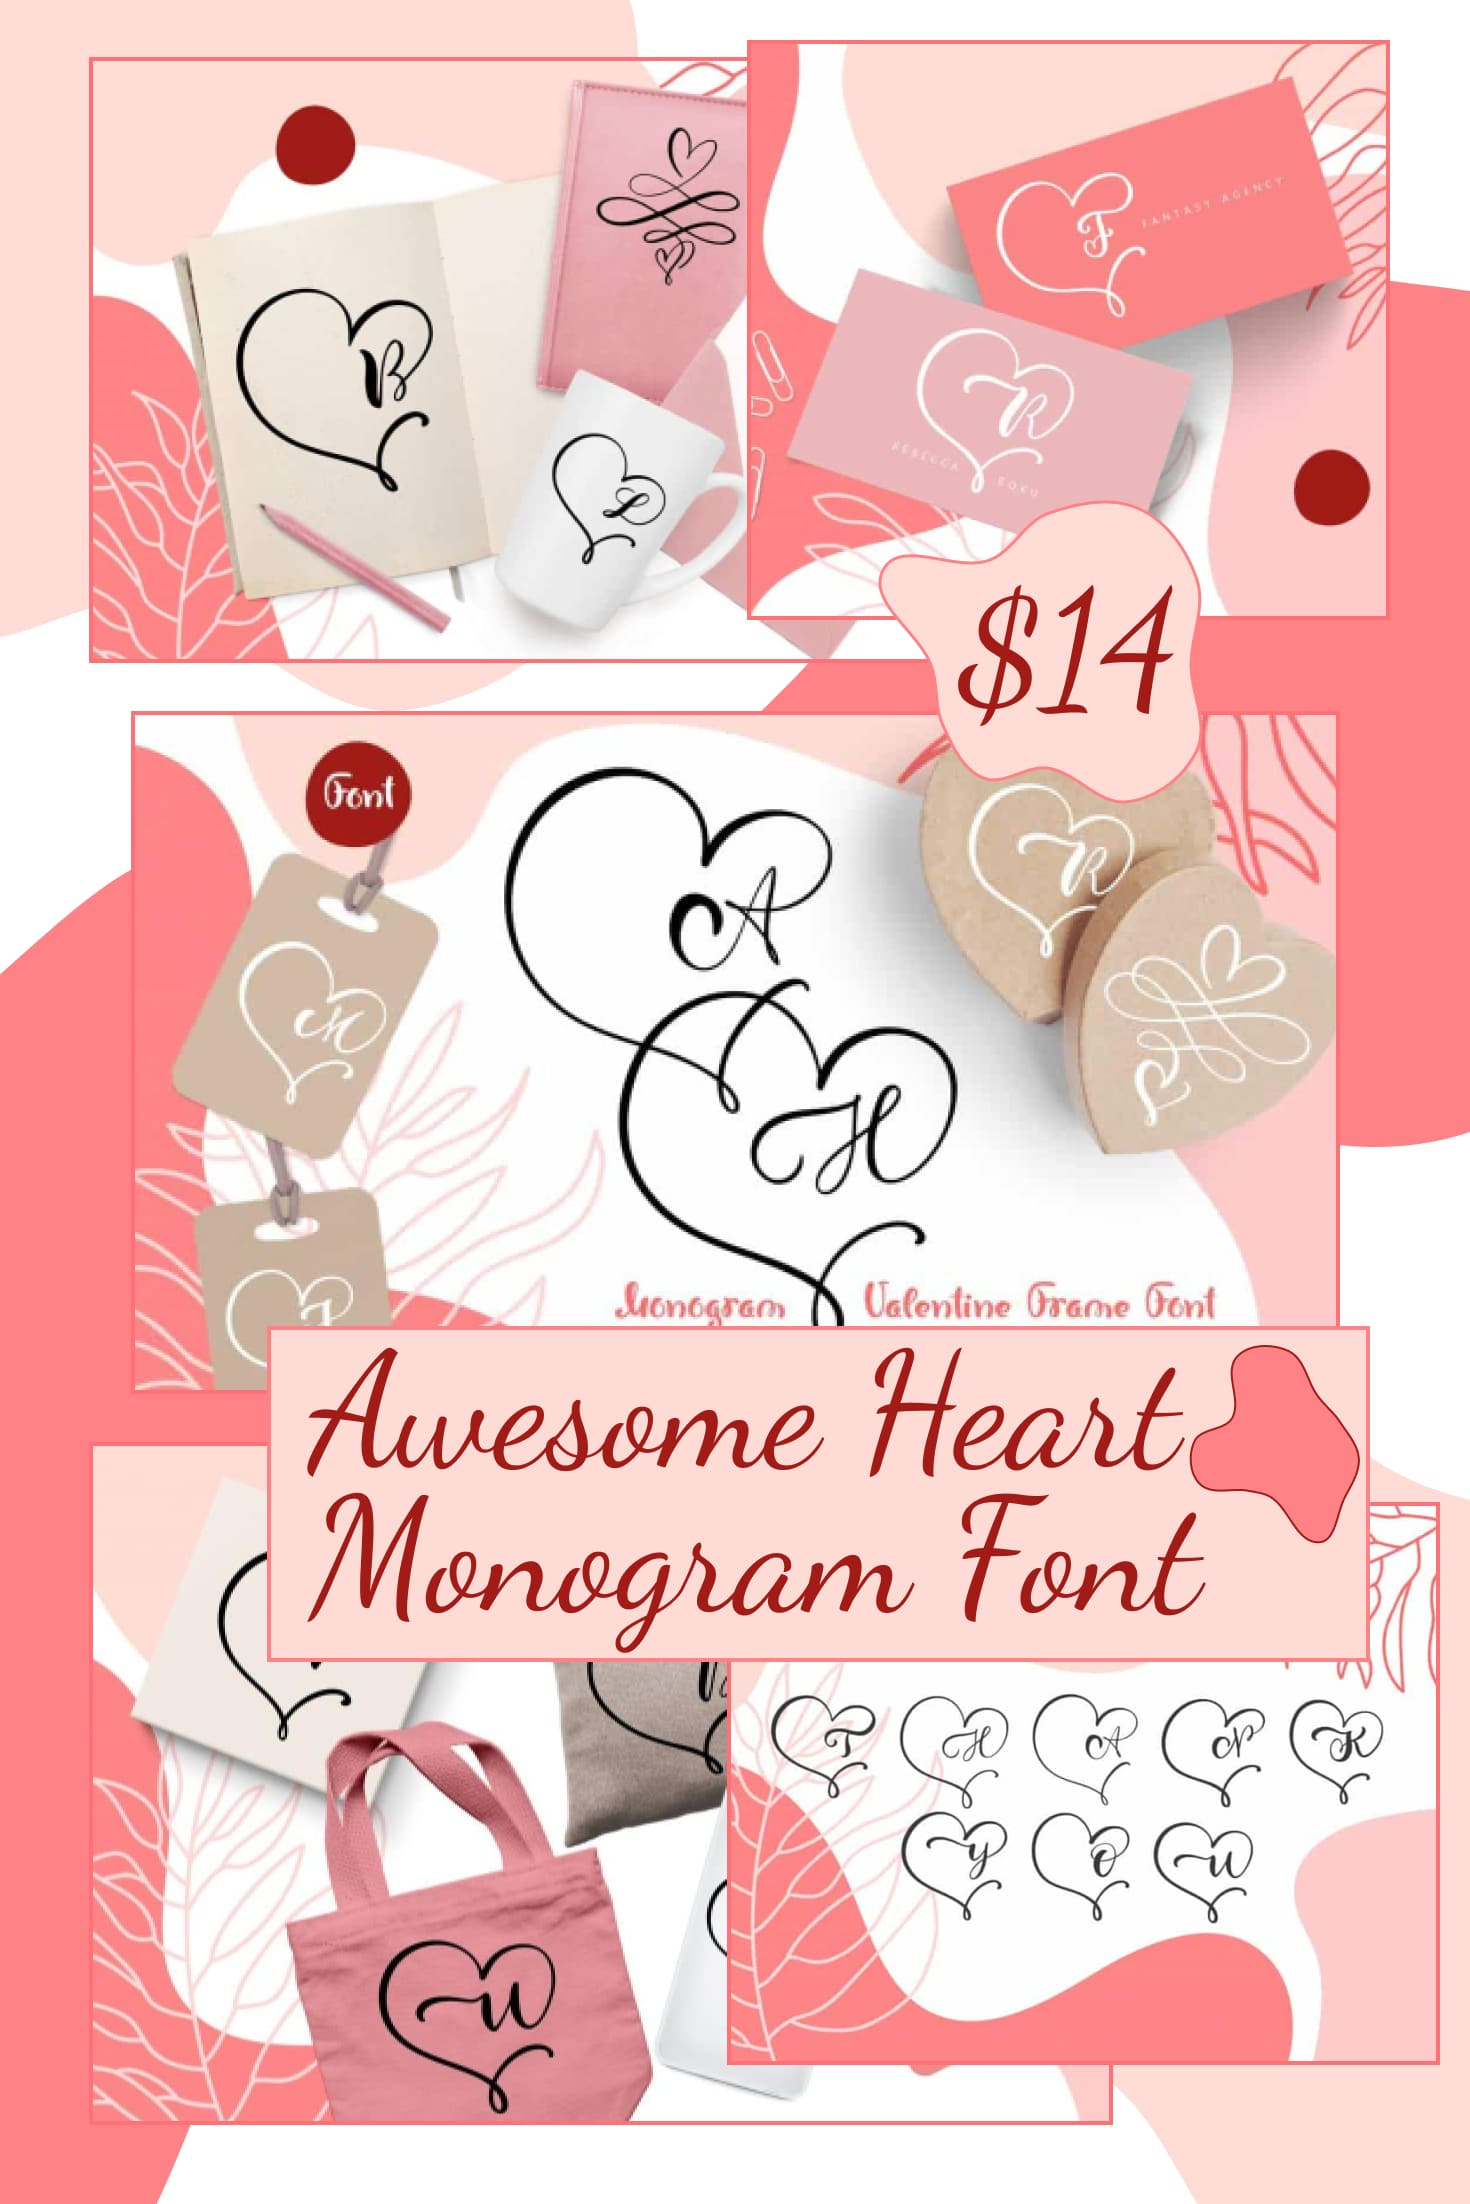 Pinterest Image: Awesome Heart Monogram Font in 2020.